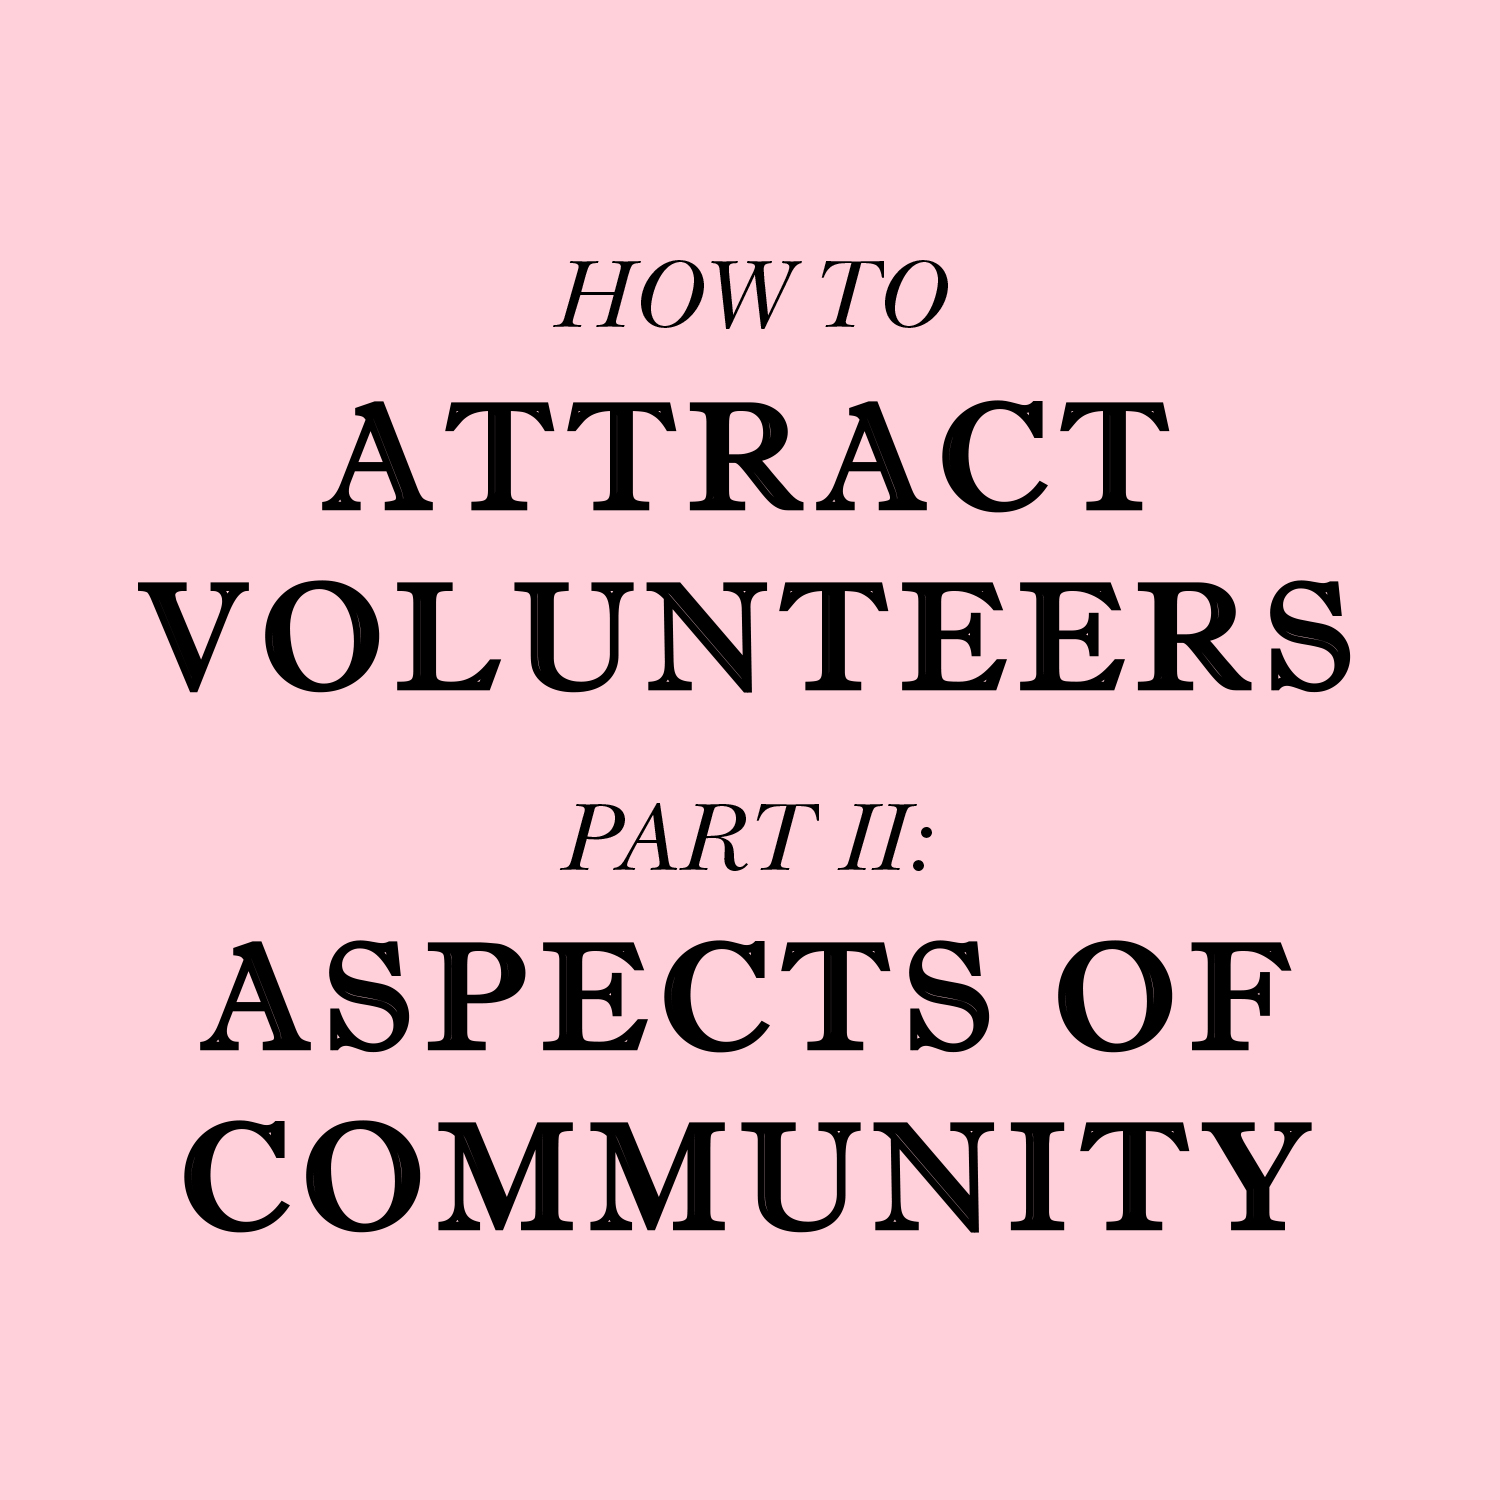 AttractVolunteersPt2.jpg